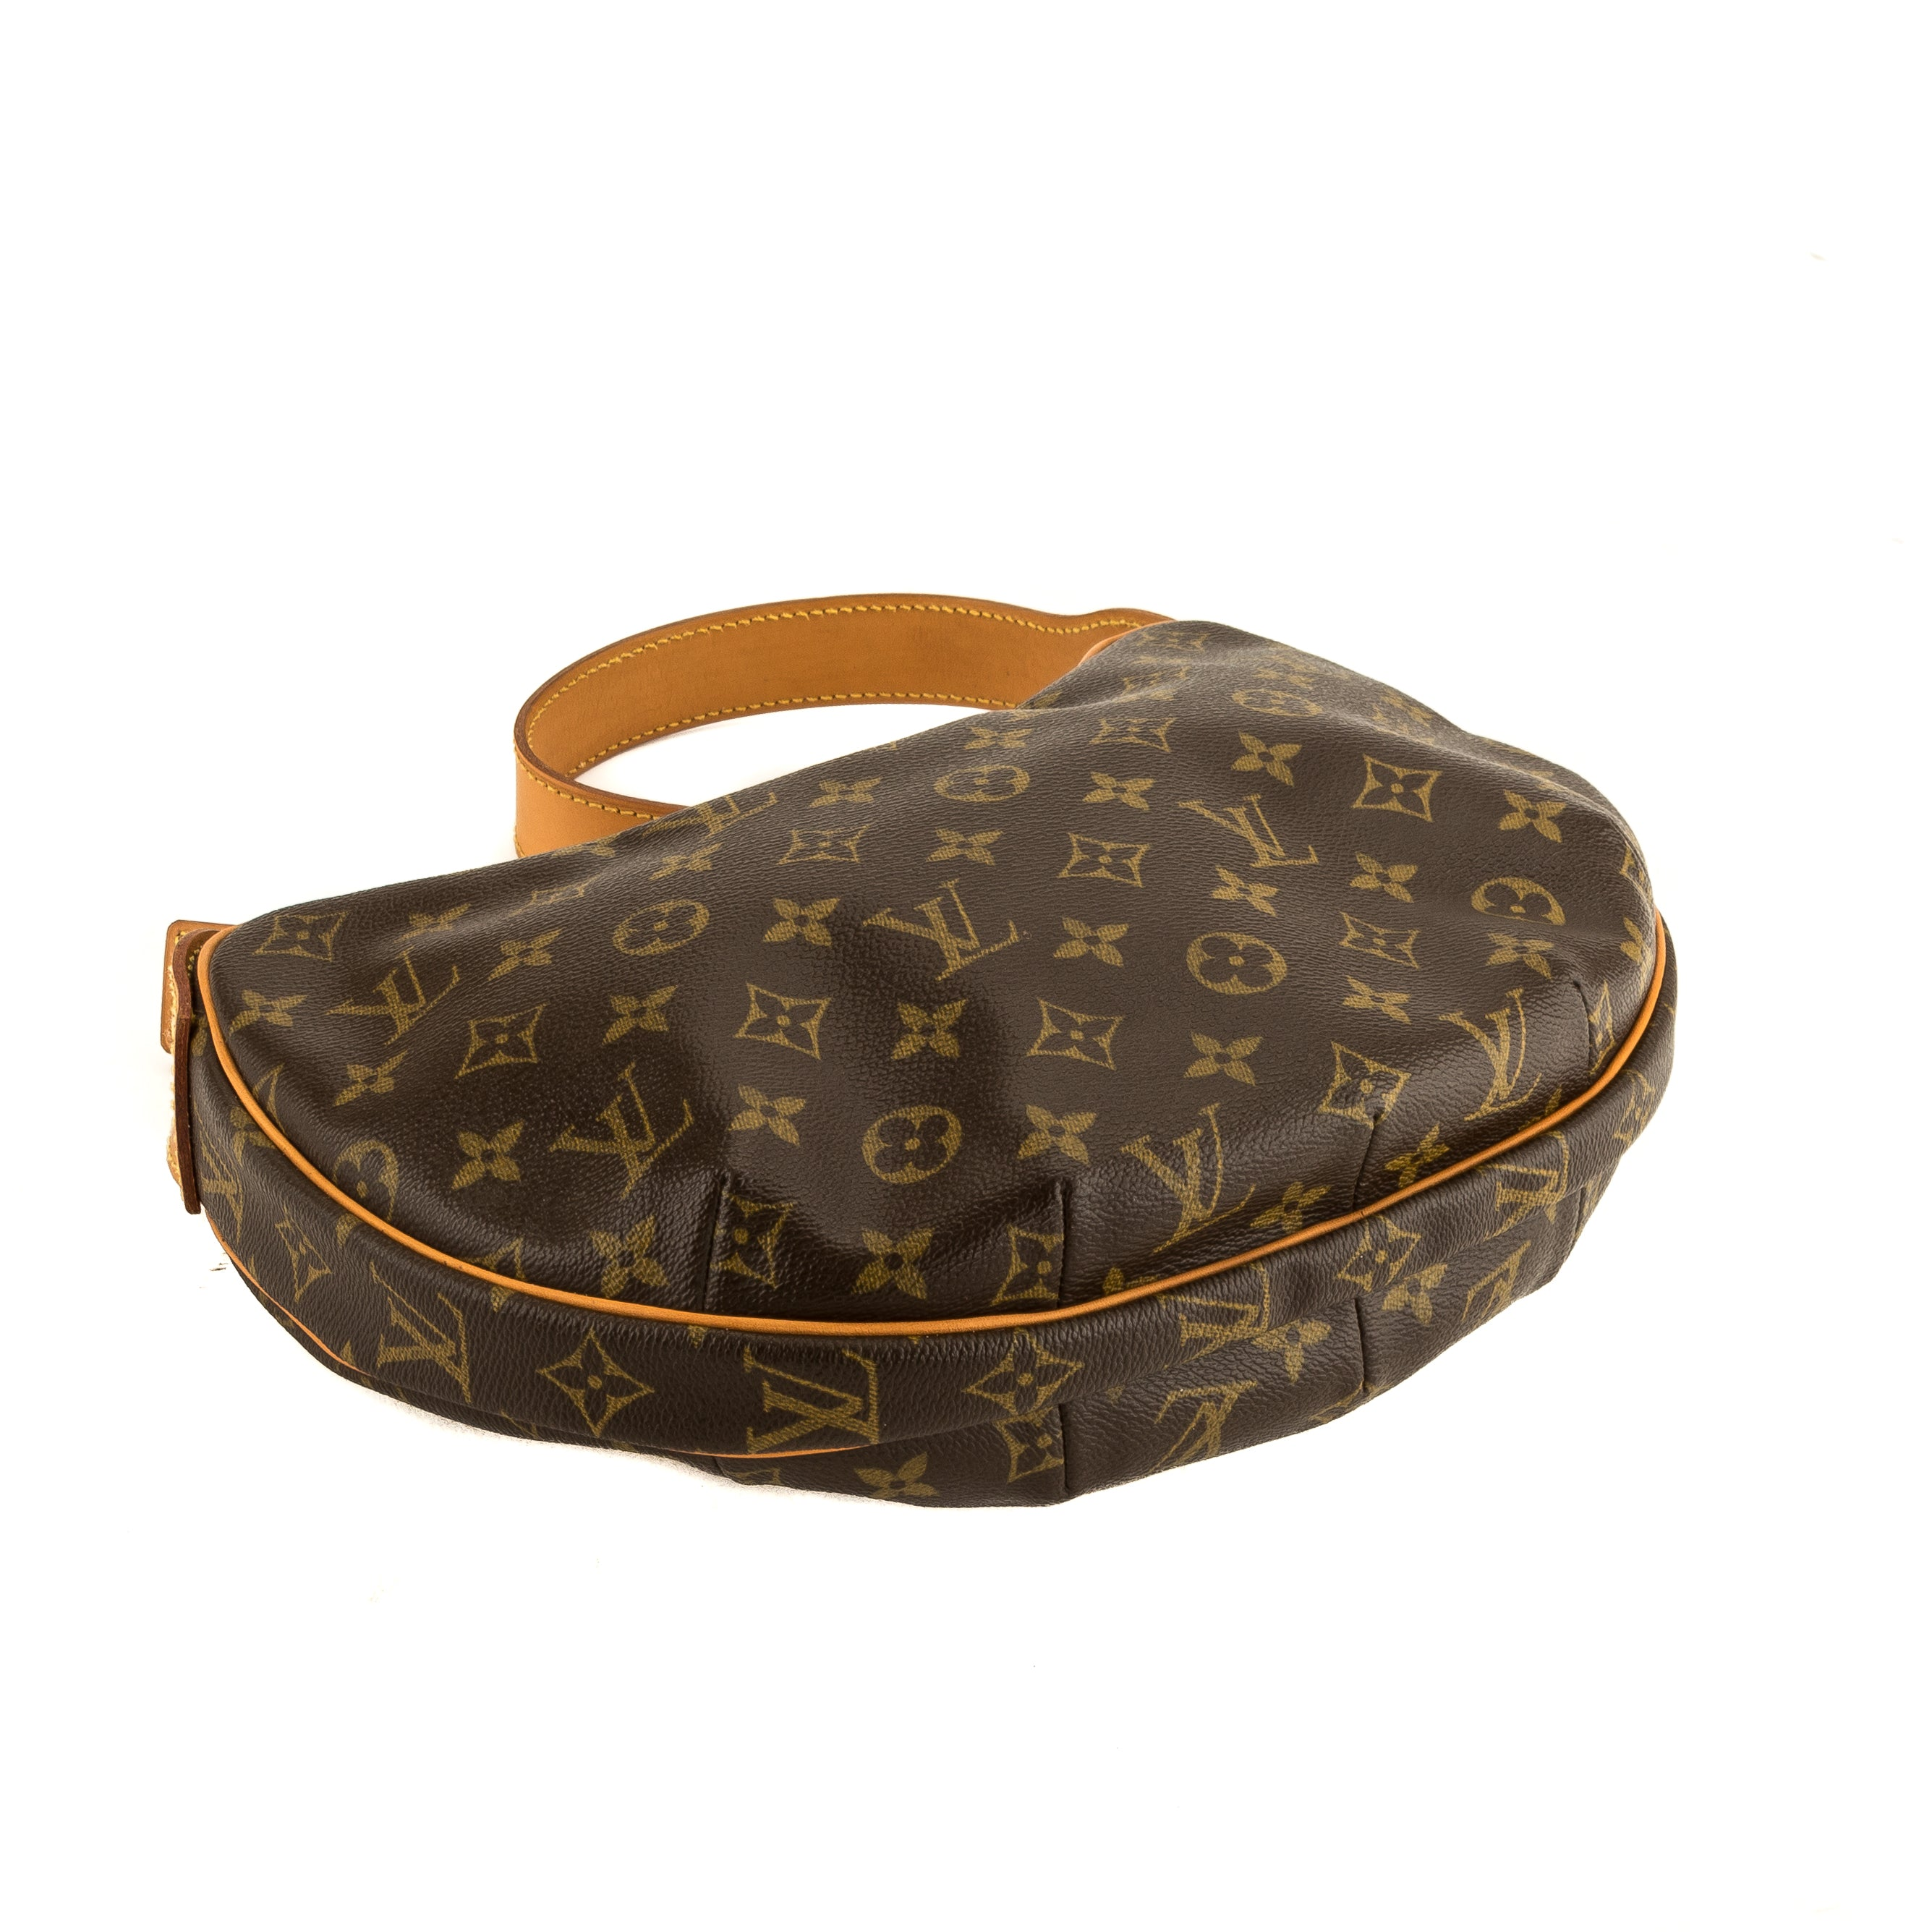 9971abada83c Louis Vuitton Monogram Croissant MM (4041014) - 4041014